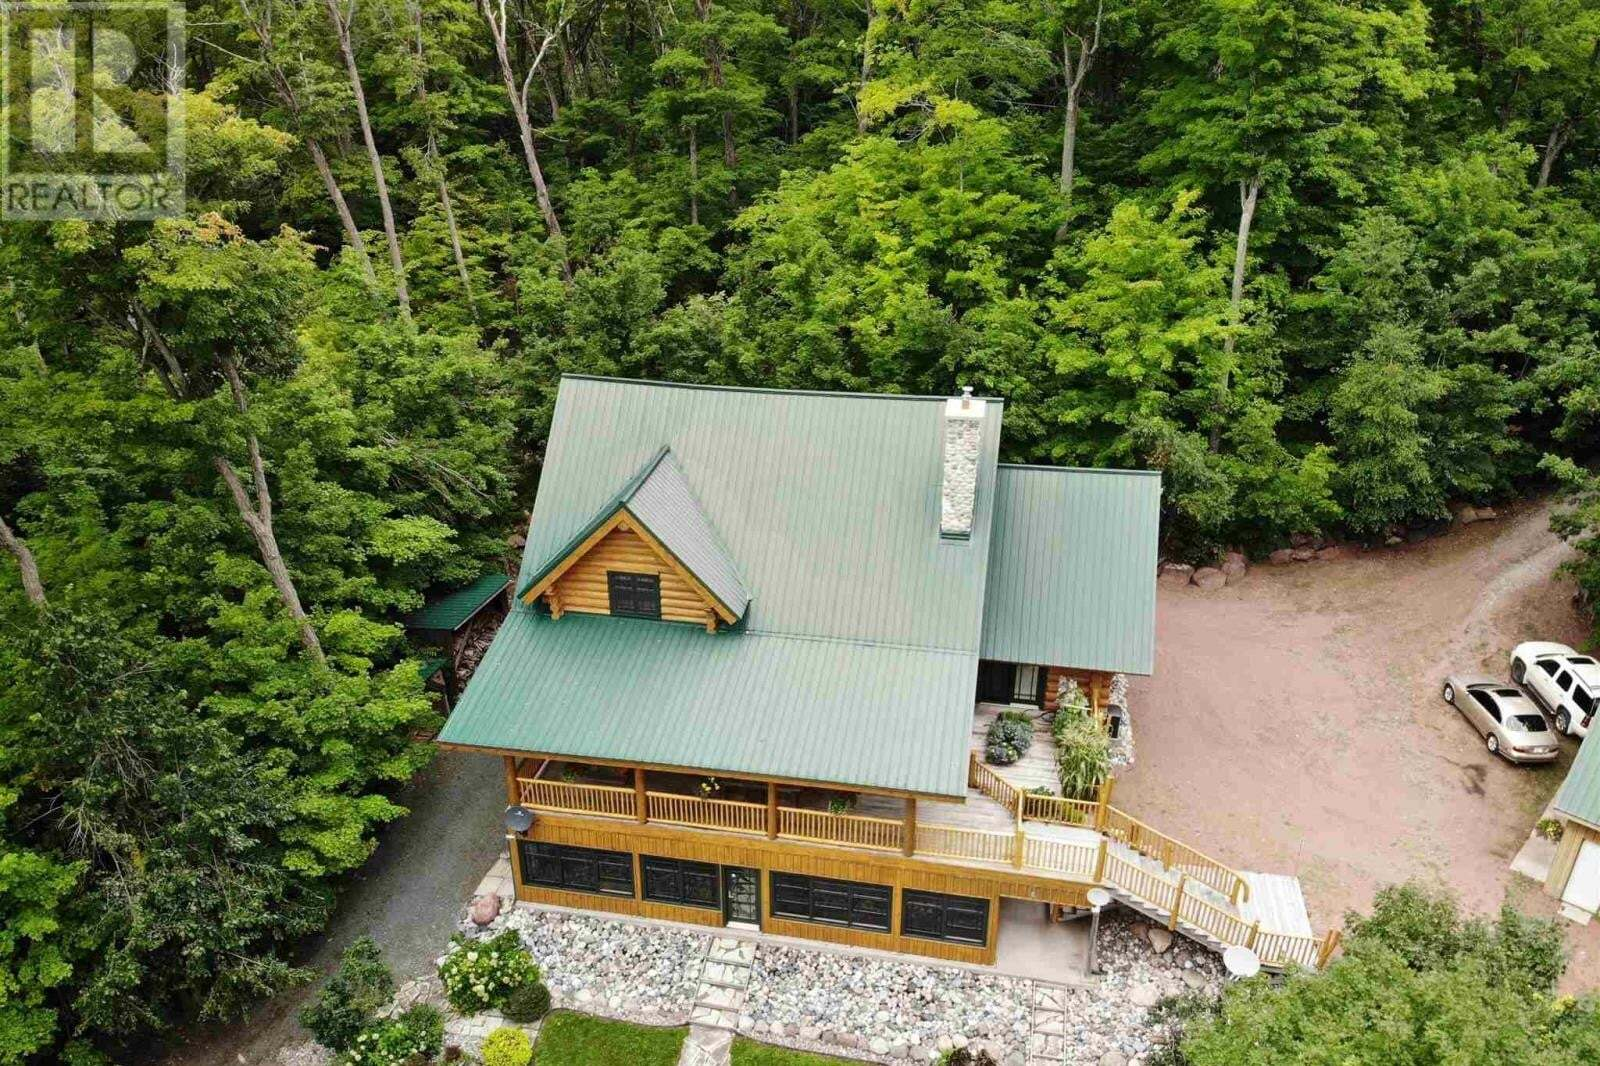 House for sale at 3255 Haight Rd St. Joseph Island Ontario - MLS: SM128130